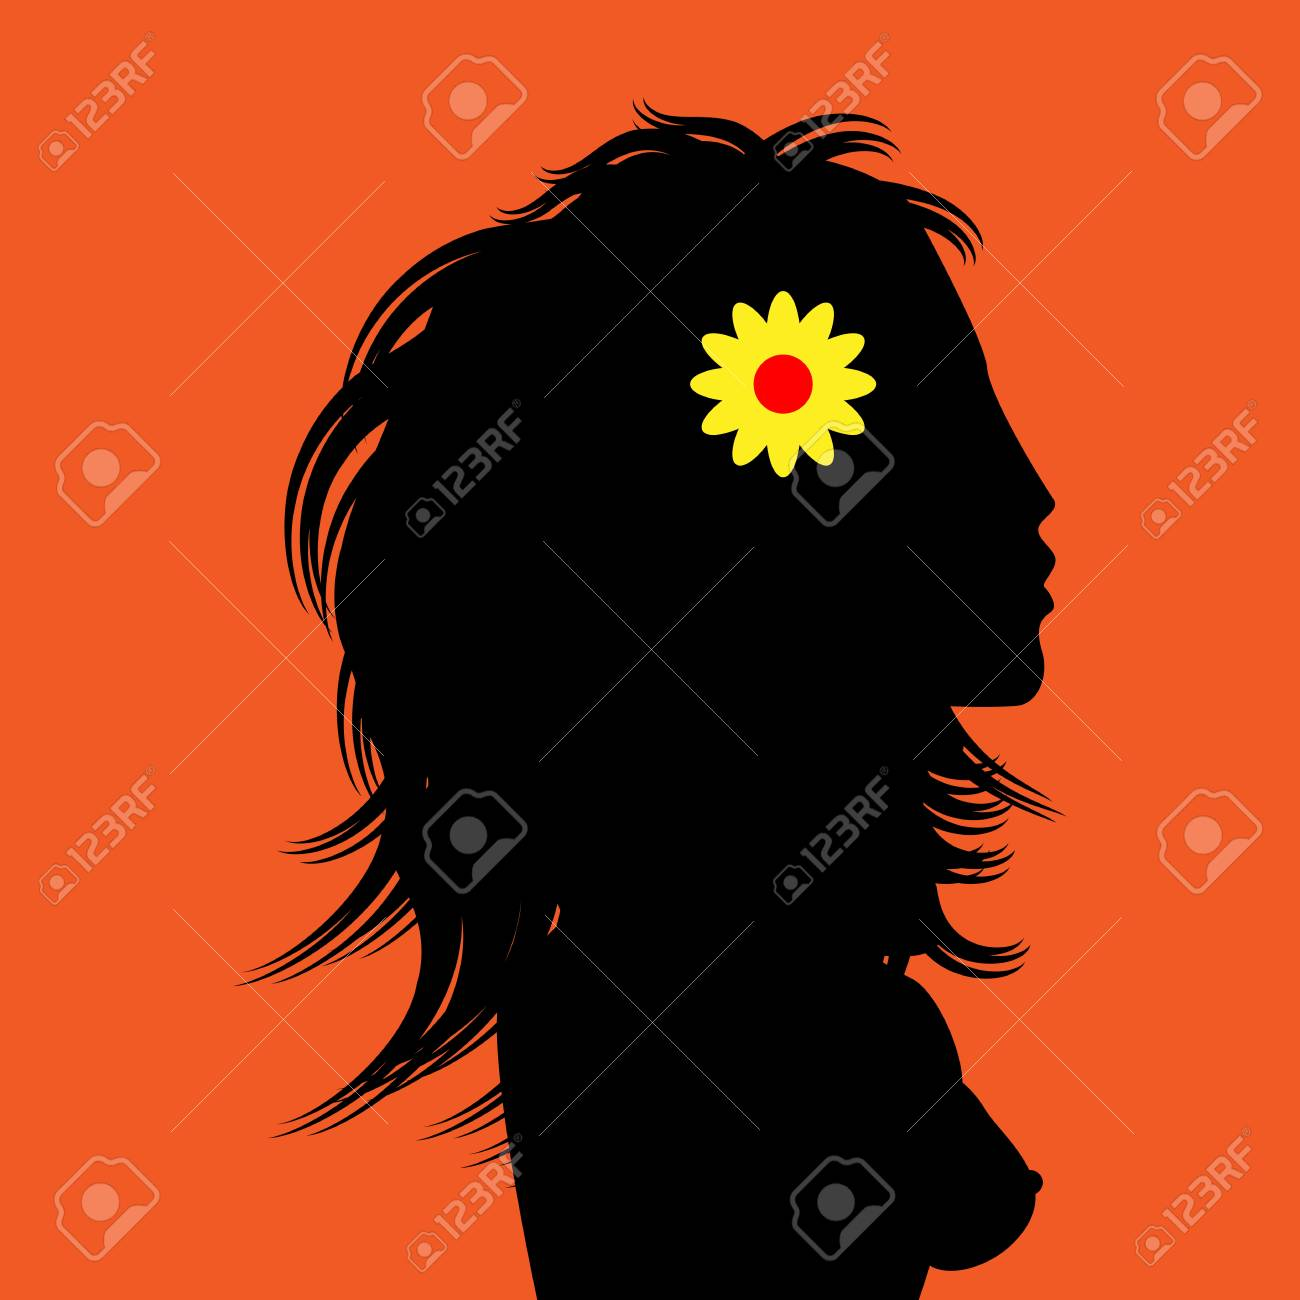 Graphic illustration of an young woman silhouette Stock Vector - 18082152